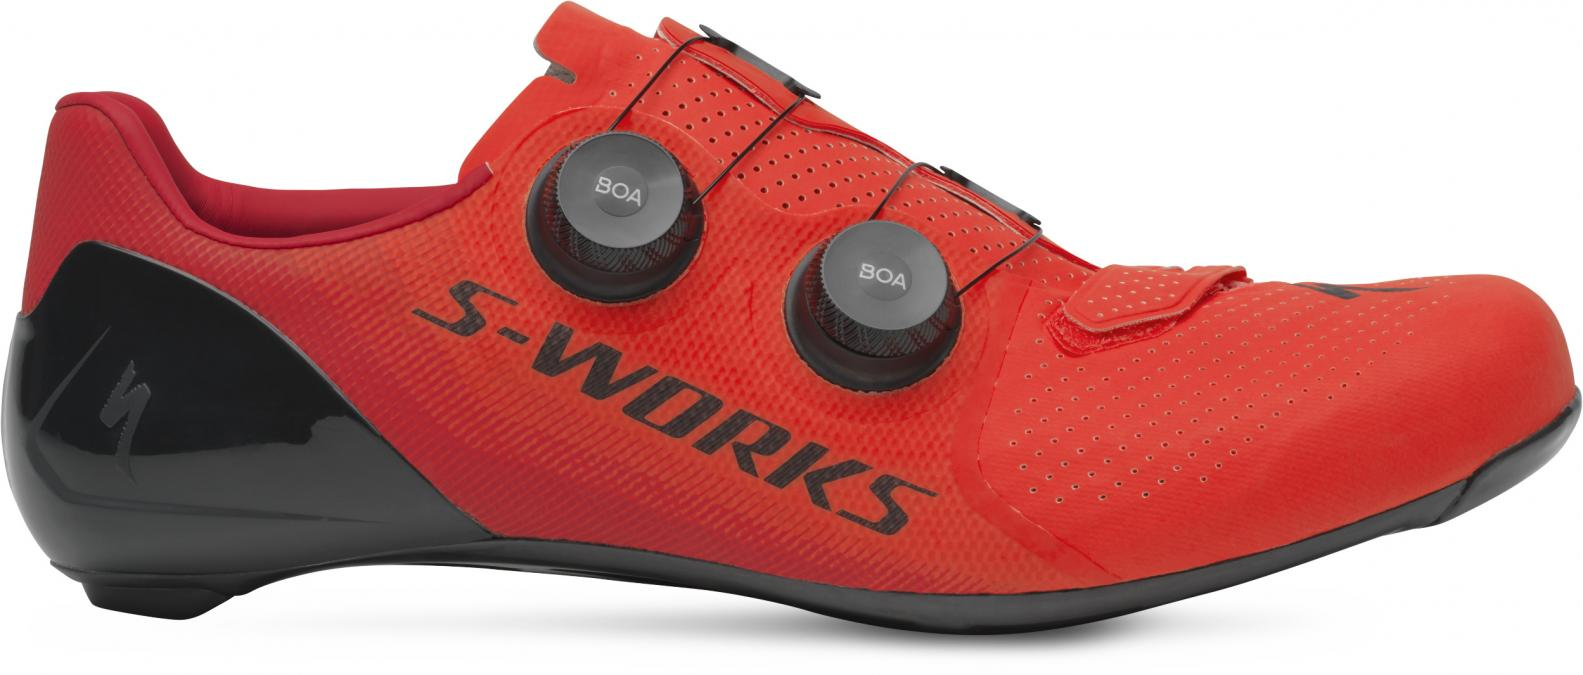 S Works Shoes